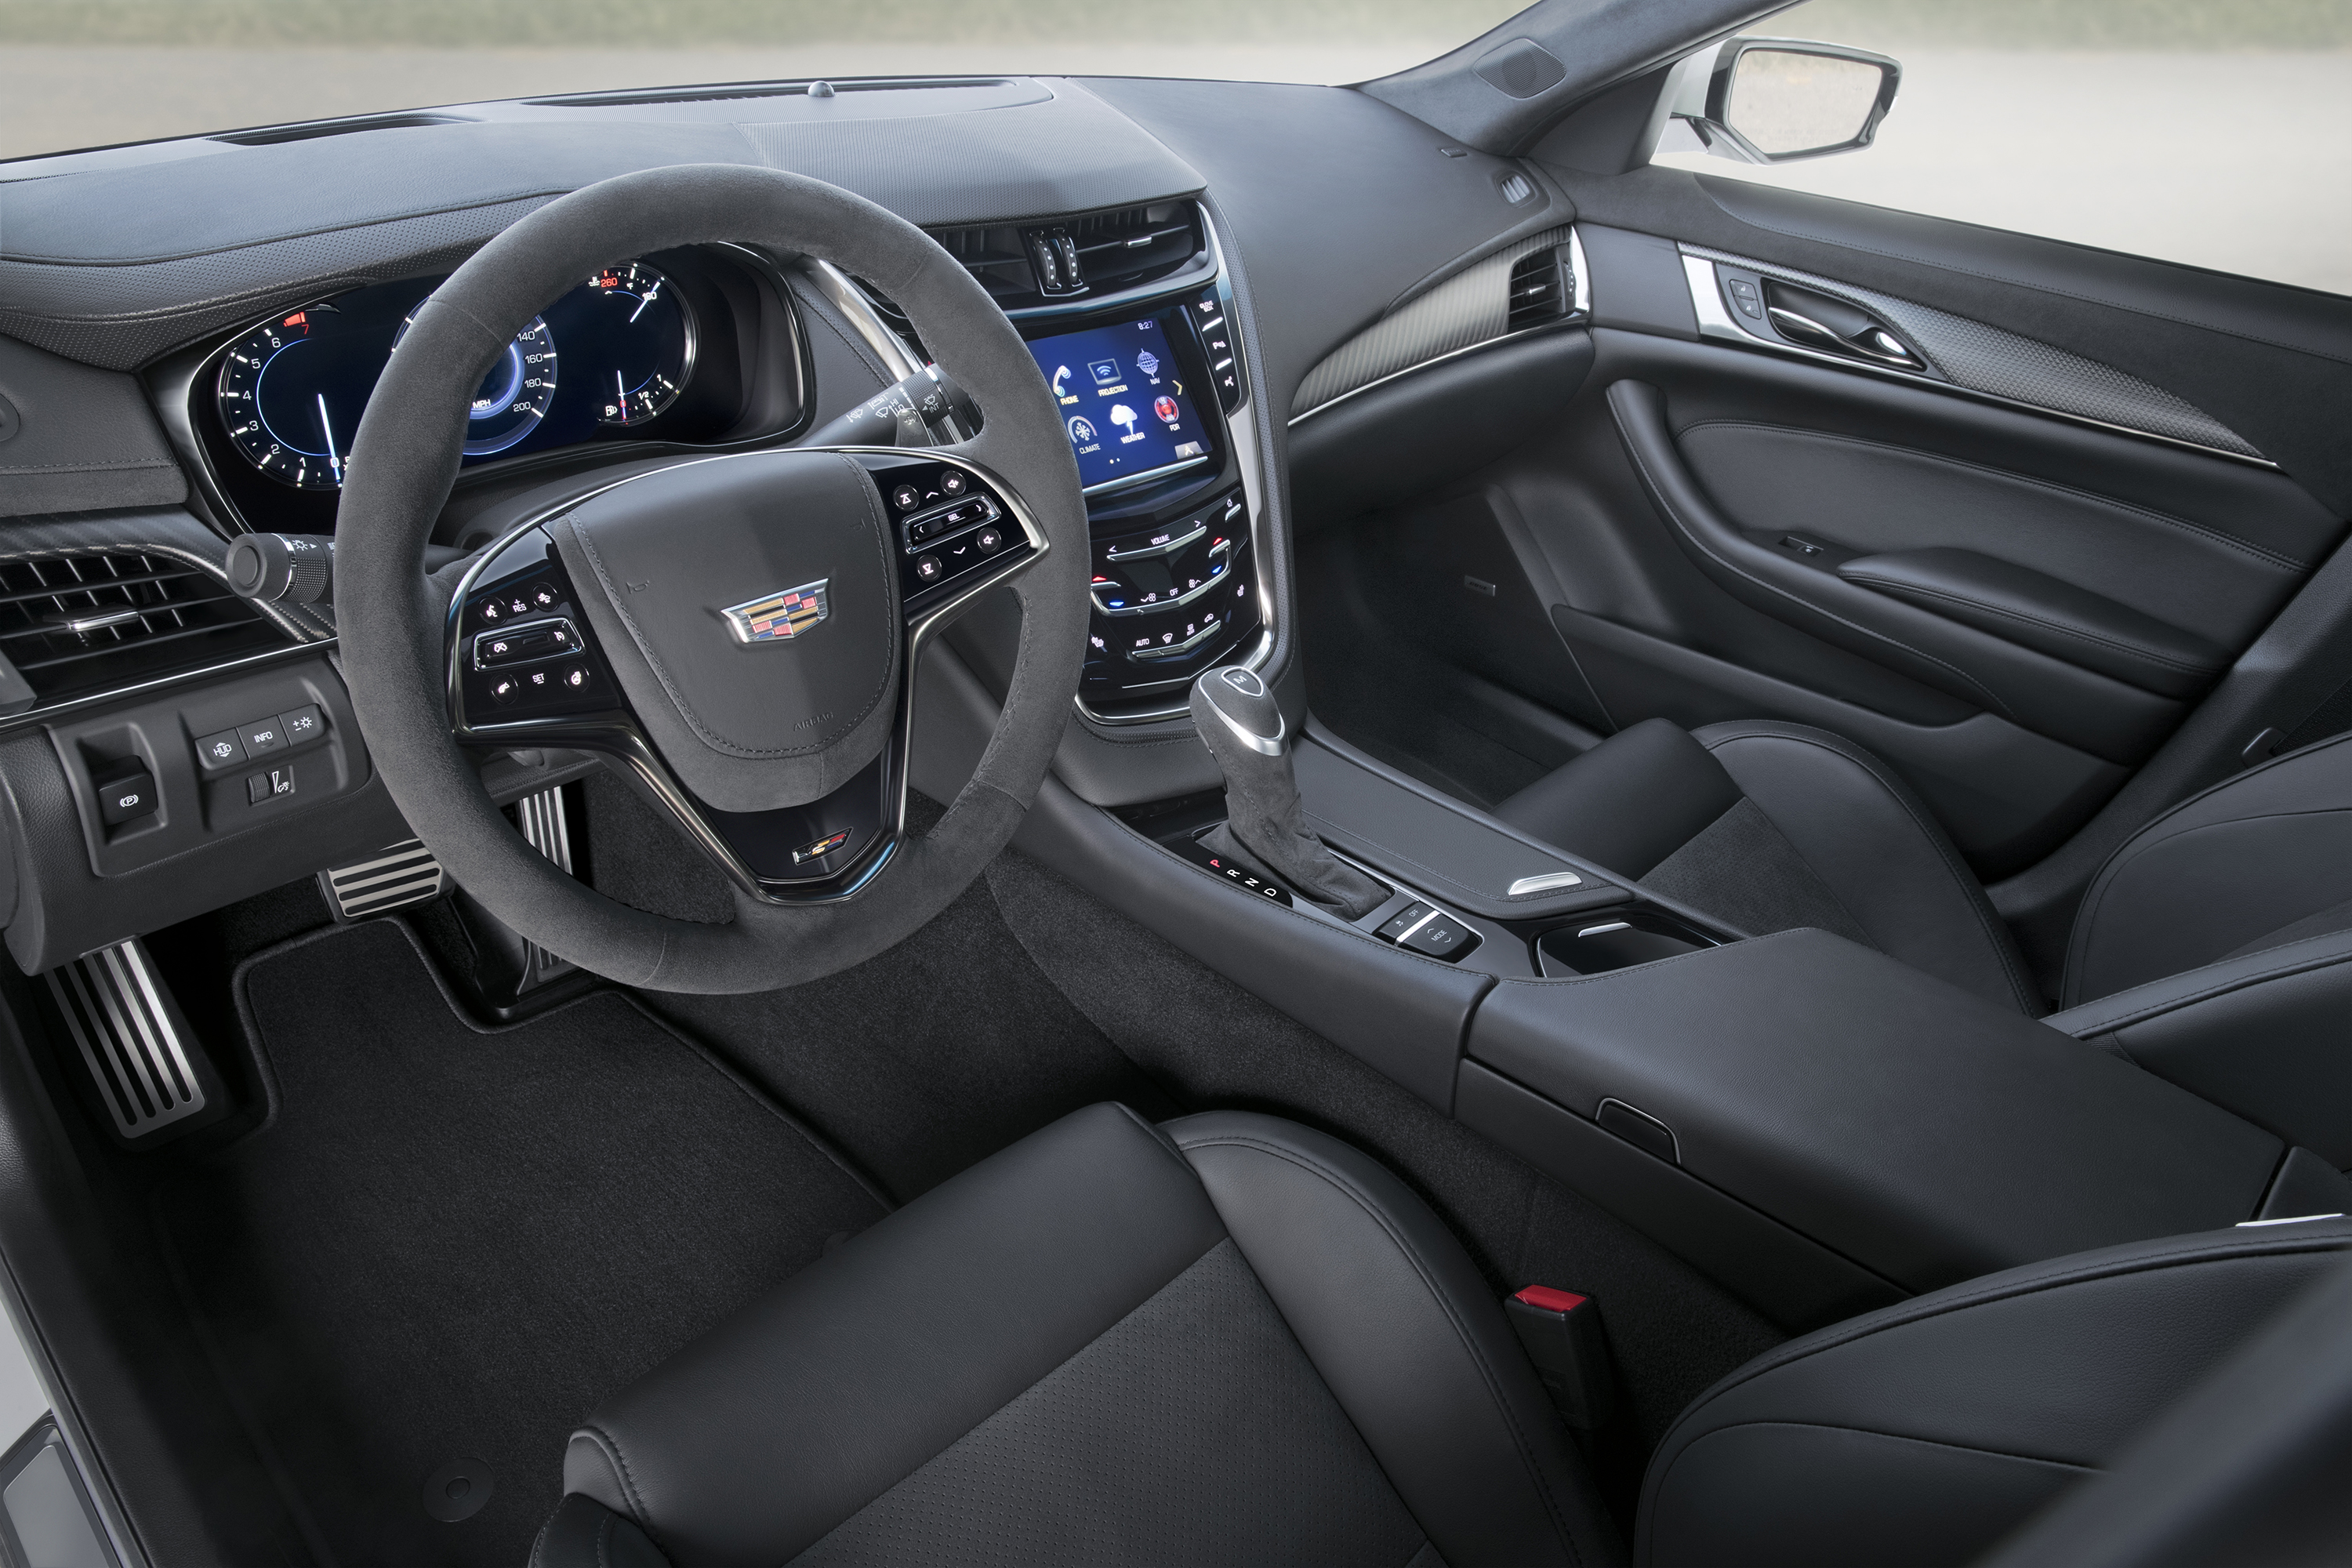 The interior of 2017 Cadillac CTS-V super sedan with the Carbon Black sport package includes low-gloss carbon fiber interior trim, sueded steering wheel and shifter, and standard V-Series performance front seats with available RECARO V-Series front seats. The Carbon Black sport package for 2017 includes the first-ever Black Chrome grille for V-Series models and the first-ever RECARO front seats for Cadillac ATS Sedan and Coupe models among additional exterior and interior appointments.